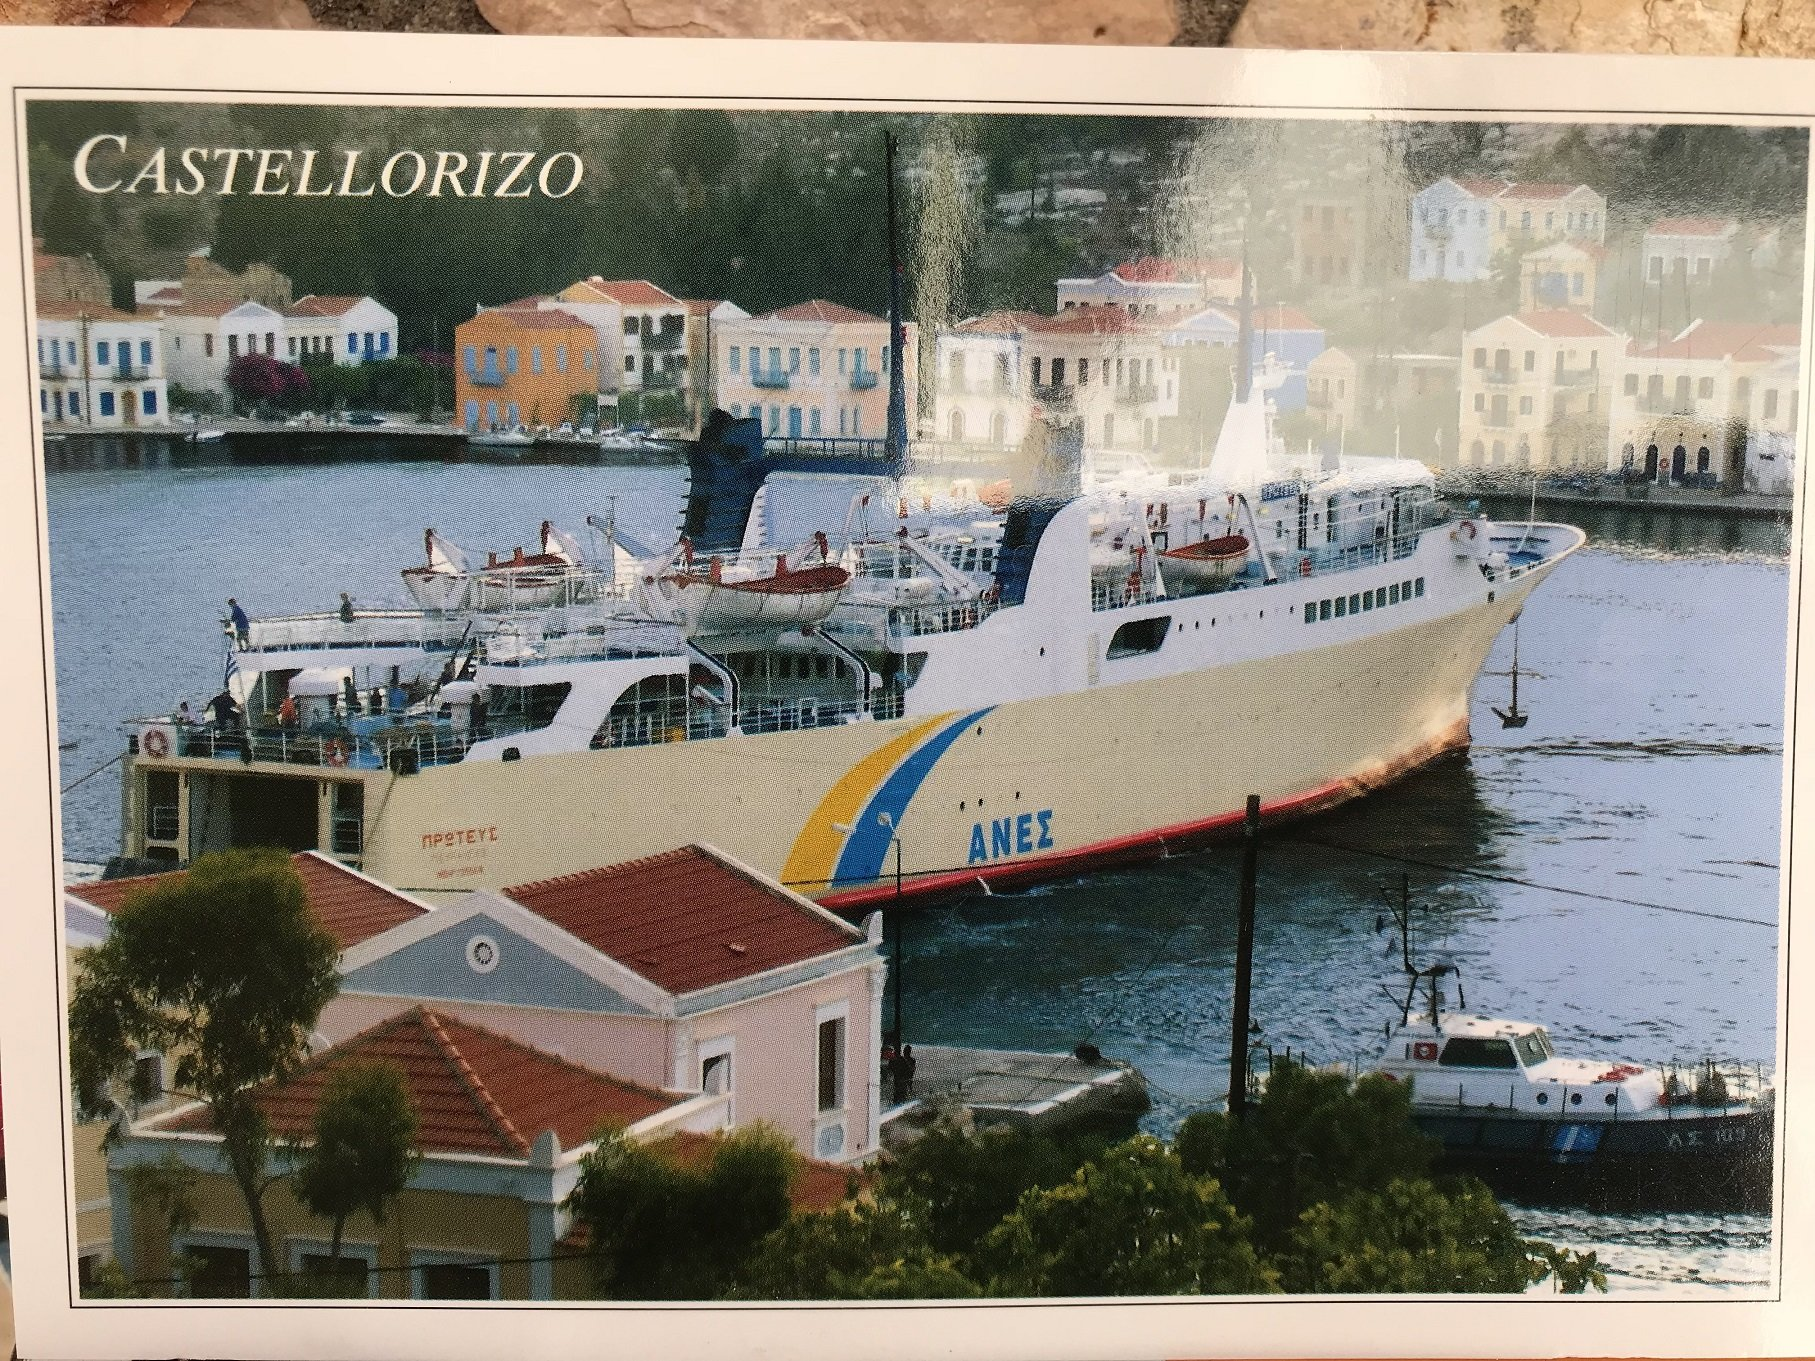 Proteas berthed in Kastellorizon. Carte postale discovered 09082018